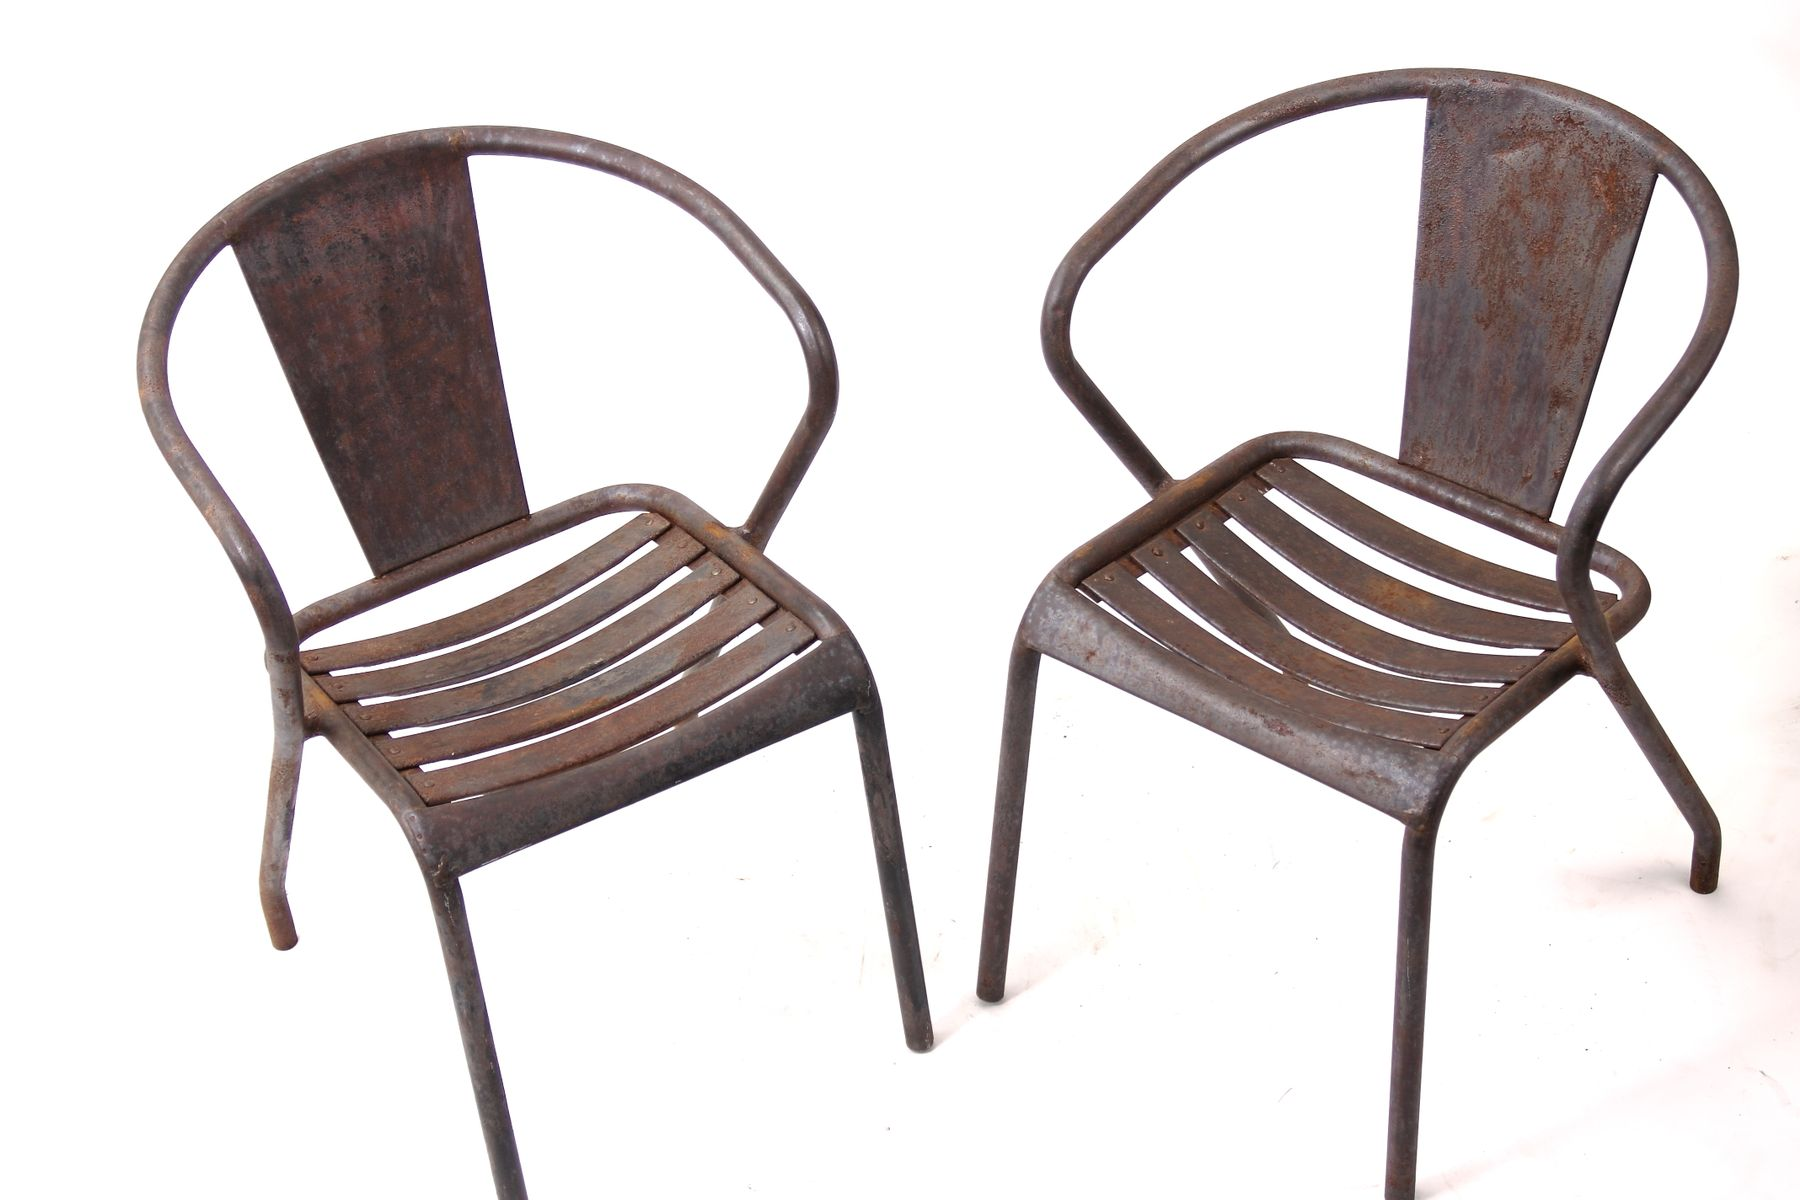 Vintage French Ft5 Bistro Chairs By Xavier Pauchard For Tolix Set Of 5 At Pamono